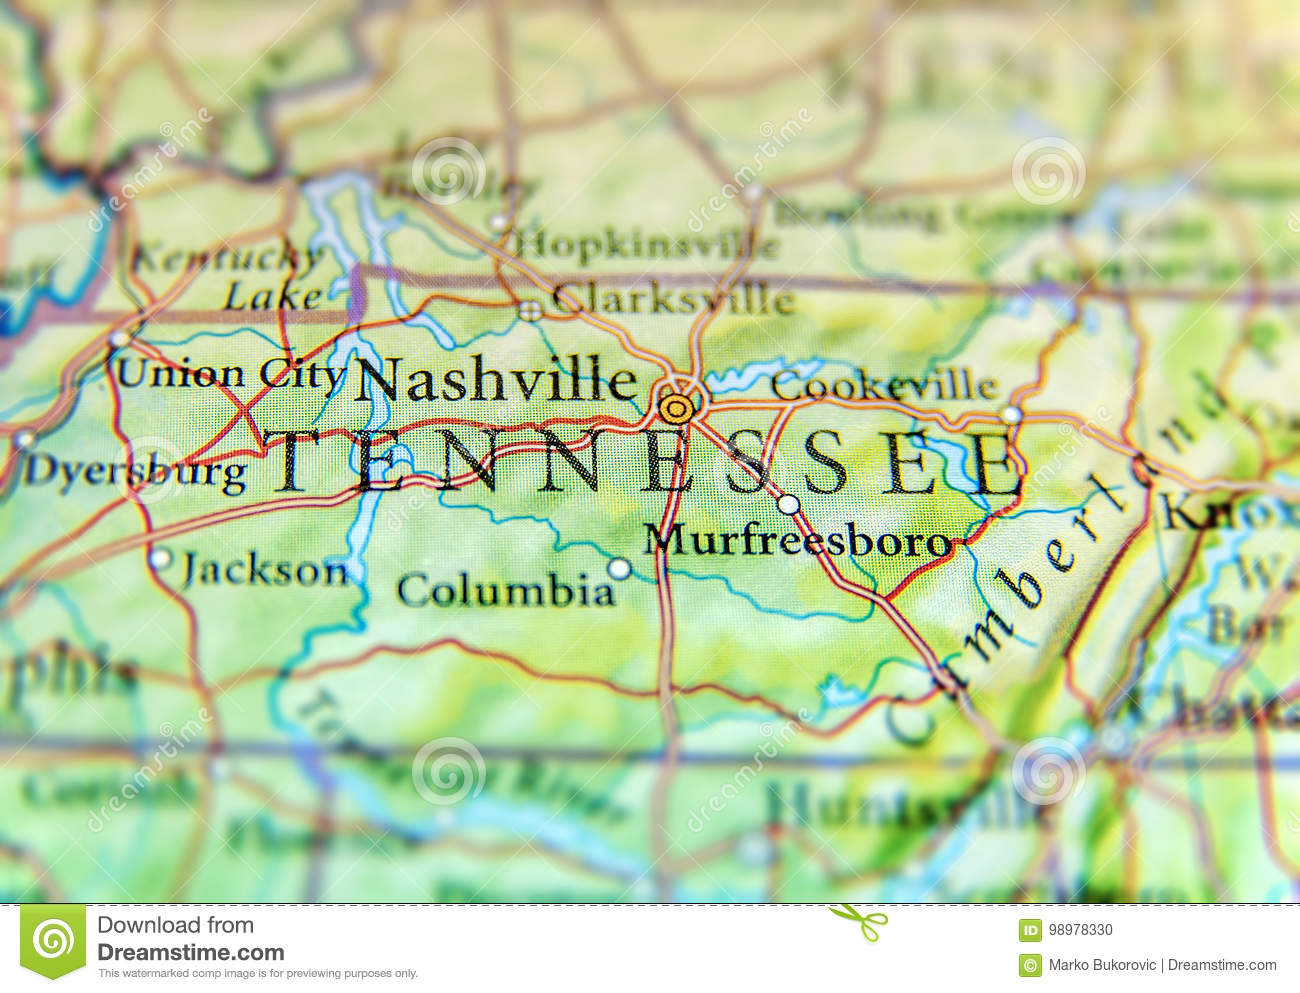 Tennessee Map With Cities Only on usa maps with cities only, tennessee name, tennessee time zone map with cities, russia map with cities only, tennessee mississippi map with cities, pakistan map with cities only, tennessee major cities, tennessee city, map of the united states with cities only, large map of tennessee only, tennessee largest cities, tennessee cities and towns, tennessee bodies of water, world map with cities only, tennessee counties maps with towns, tennessee tn,